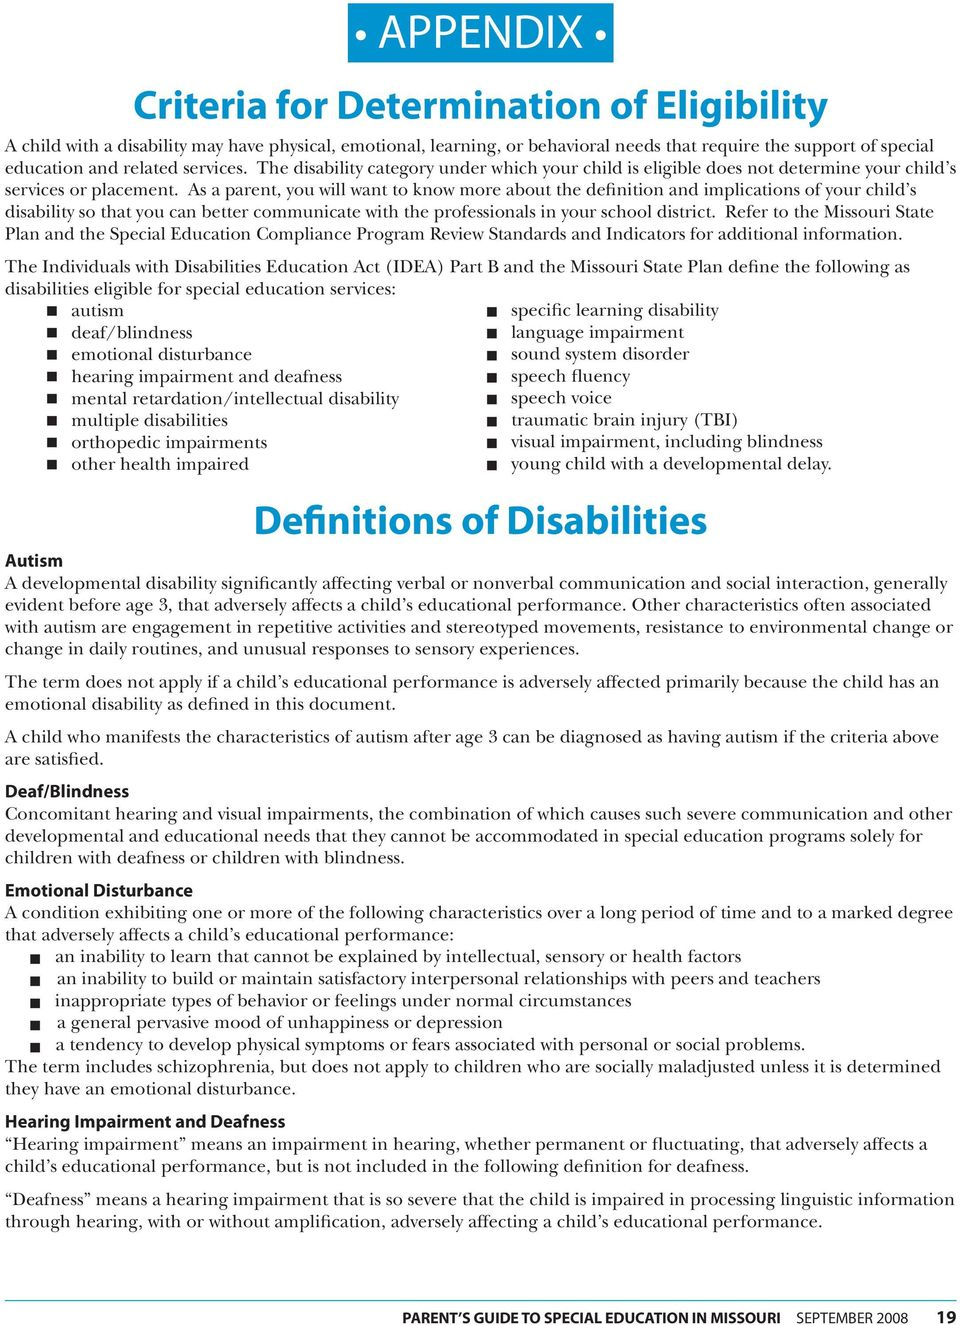 As a parent, you will want to know more about the definition and implications of your child s disability so that you can better communicate with the professionals in your school district.